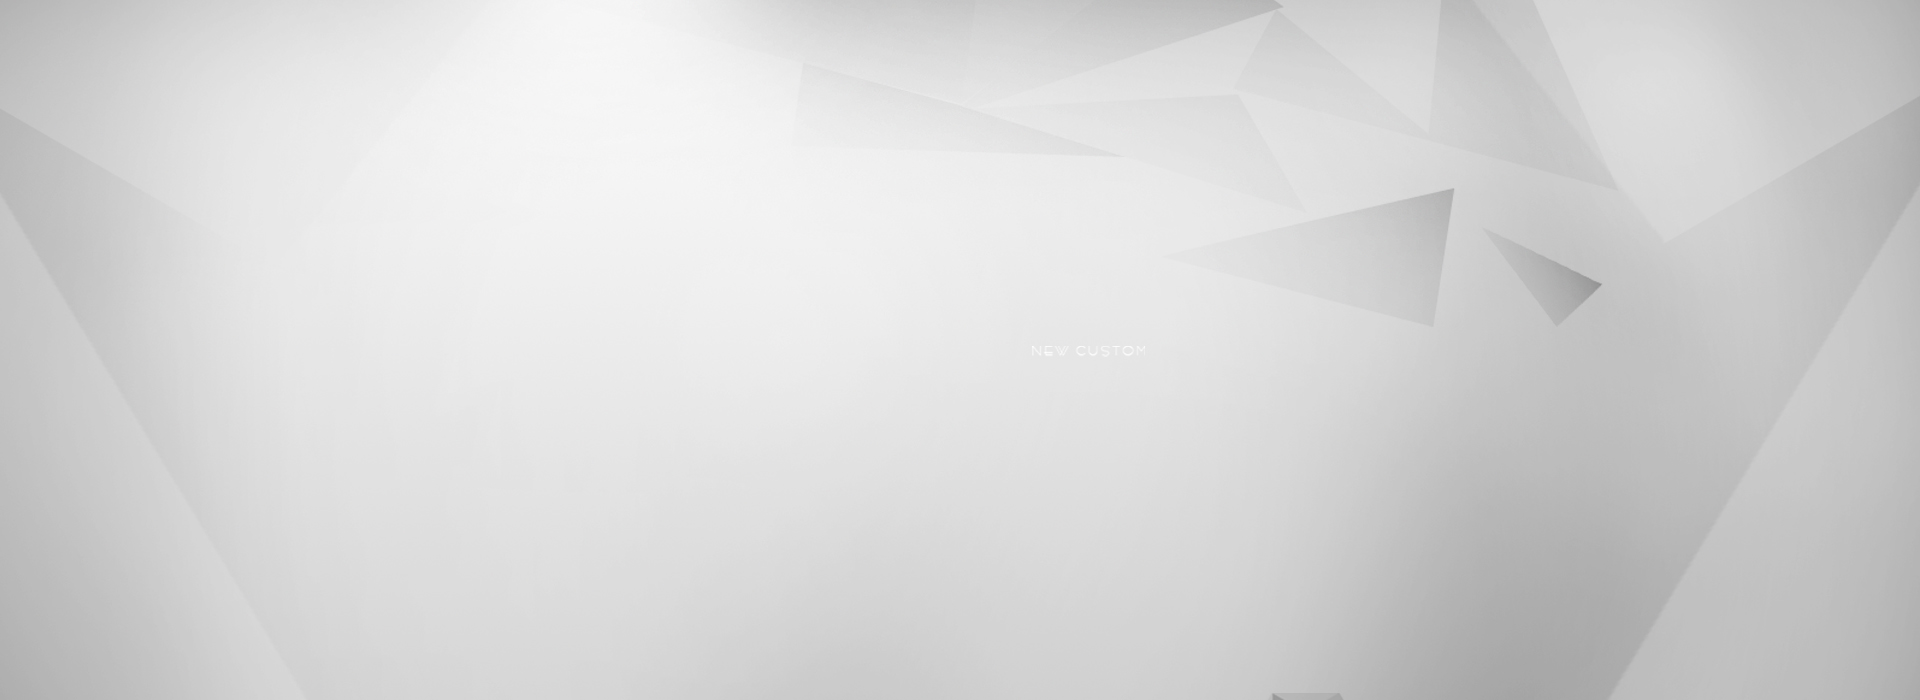 grey banner  gray  triangle  poster background image for